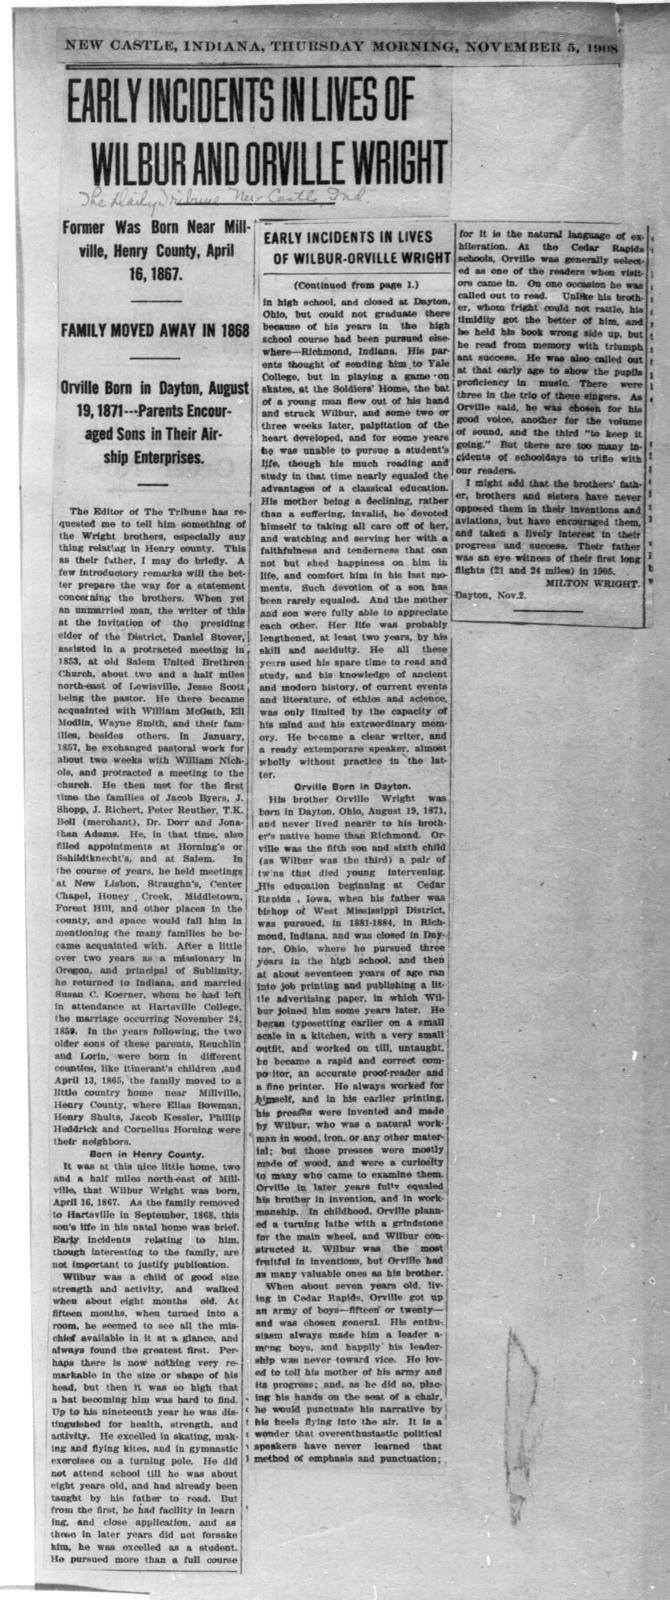 Early Incidents In Lives of Wilbur and Orville Wright [The Daily Tribune, 5 November 1908]